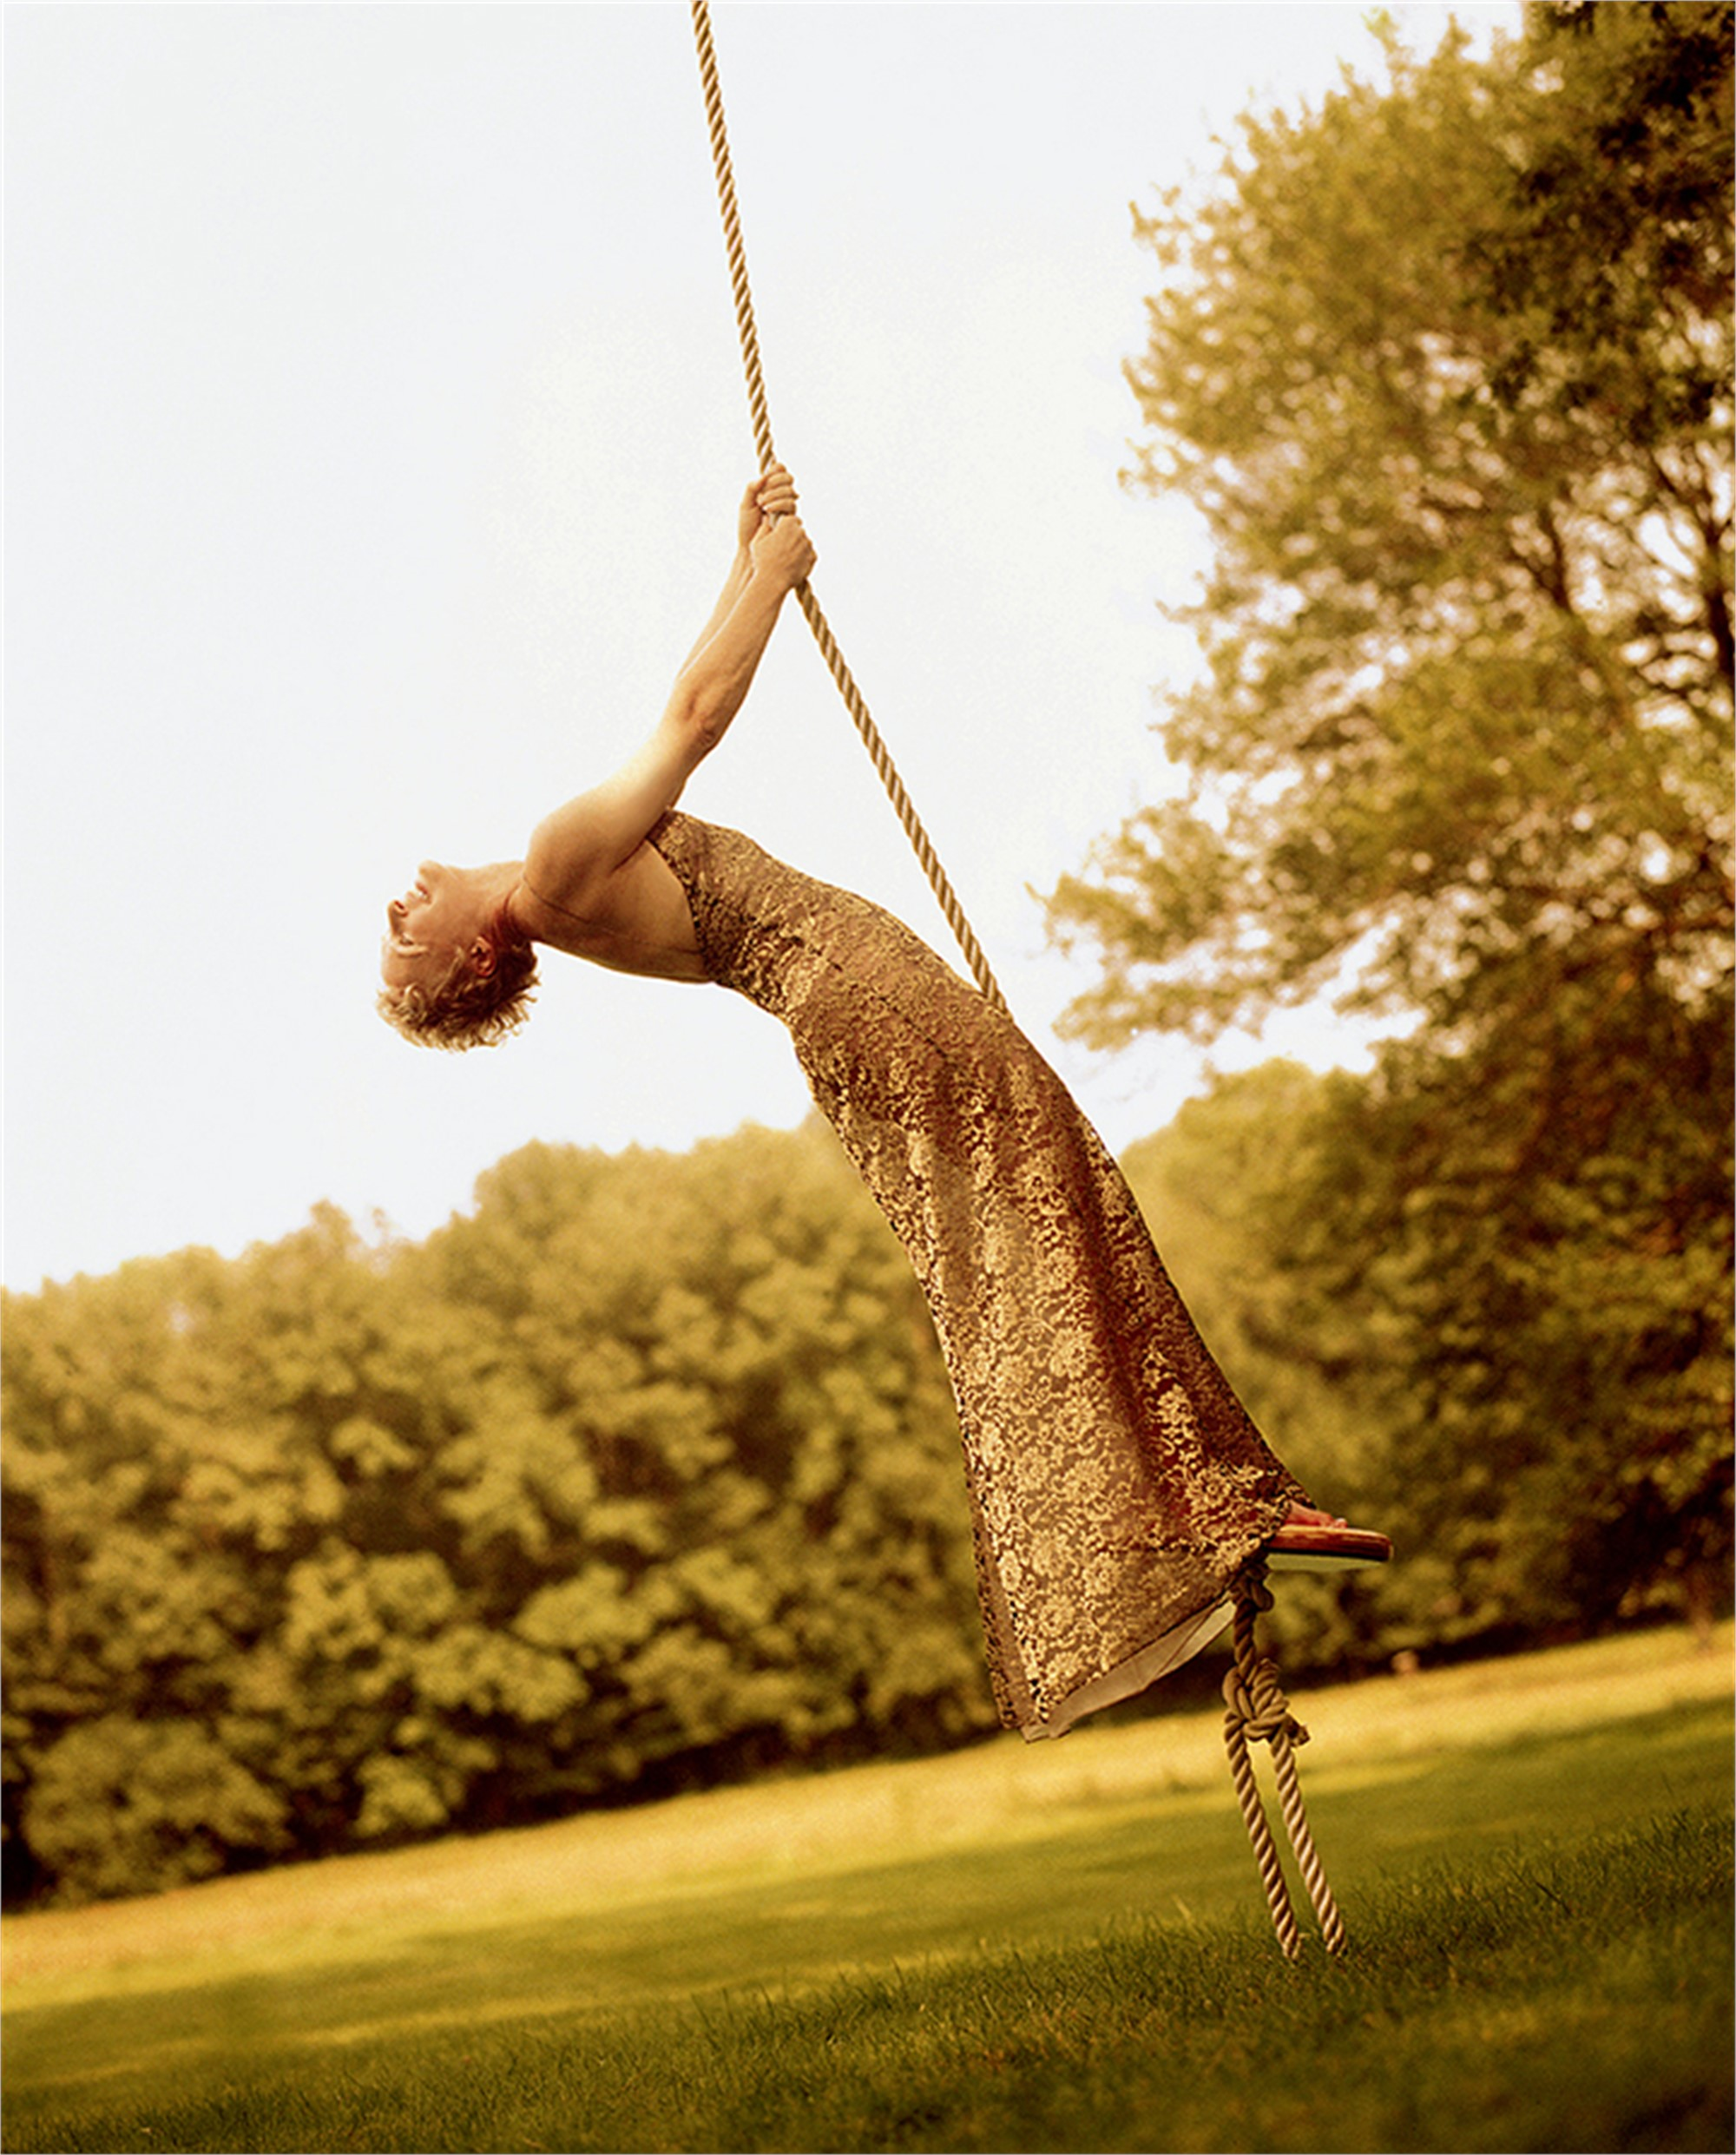 96095 Glenn Close On Swing Color by Timothy White